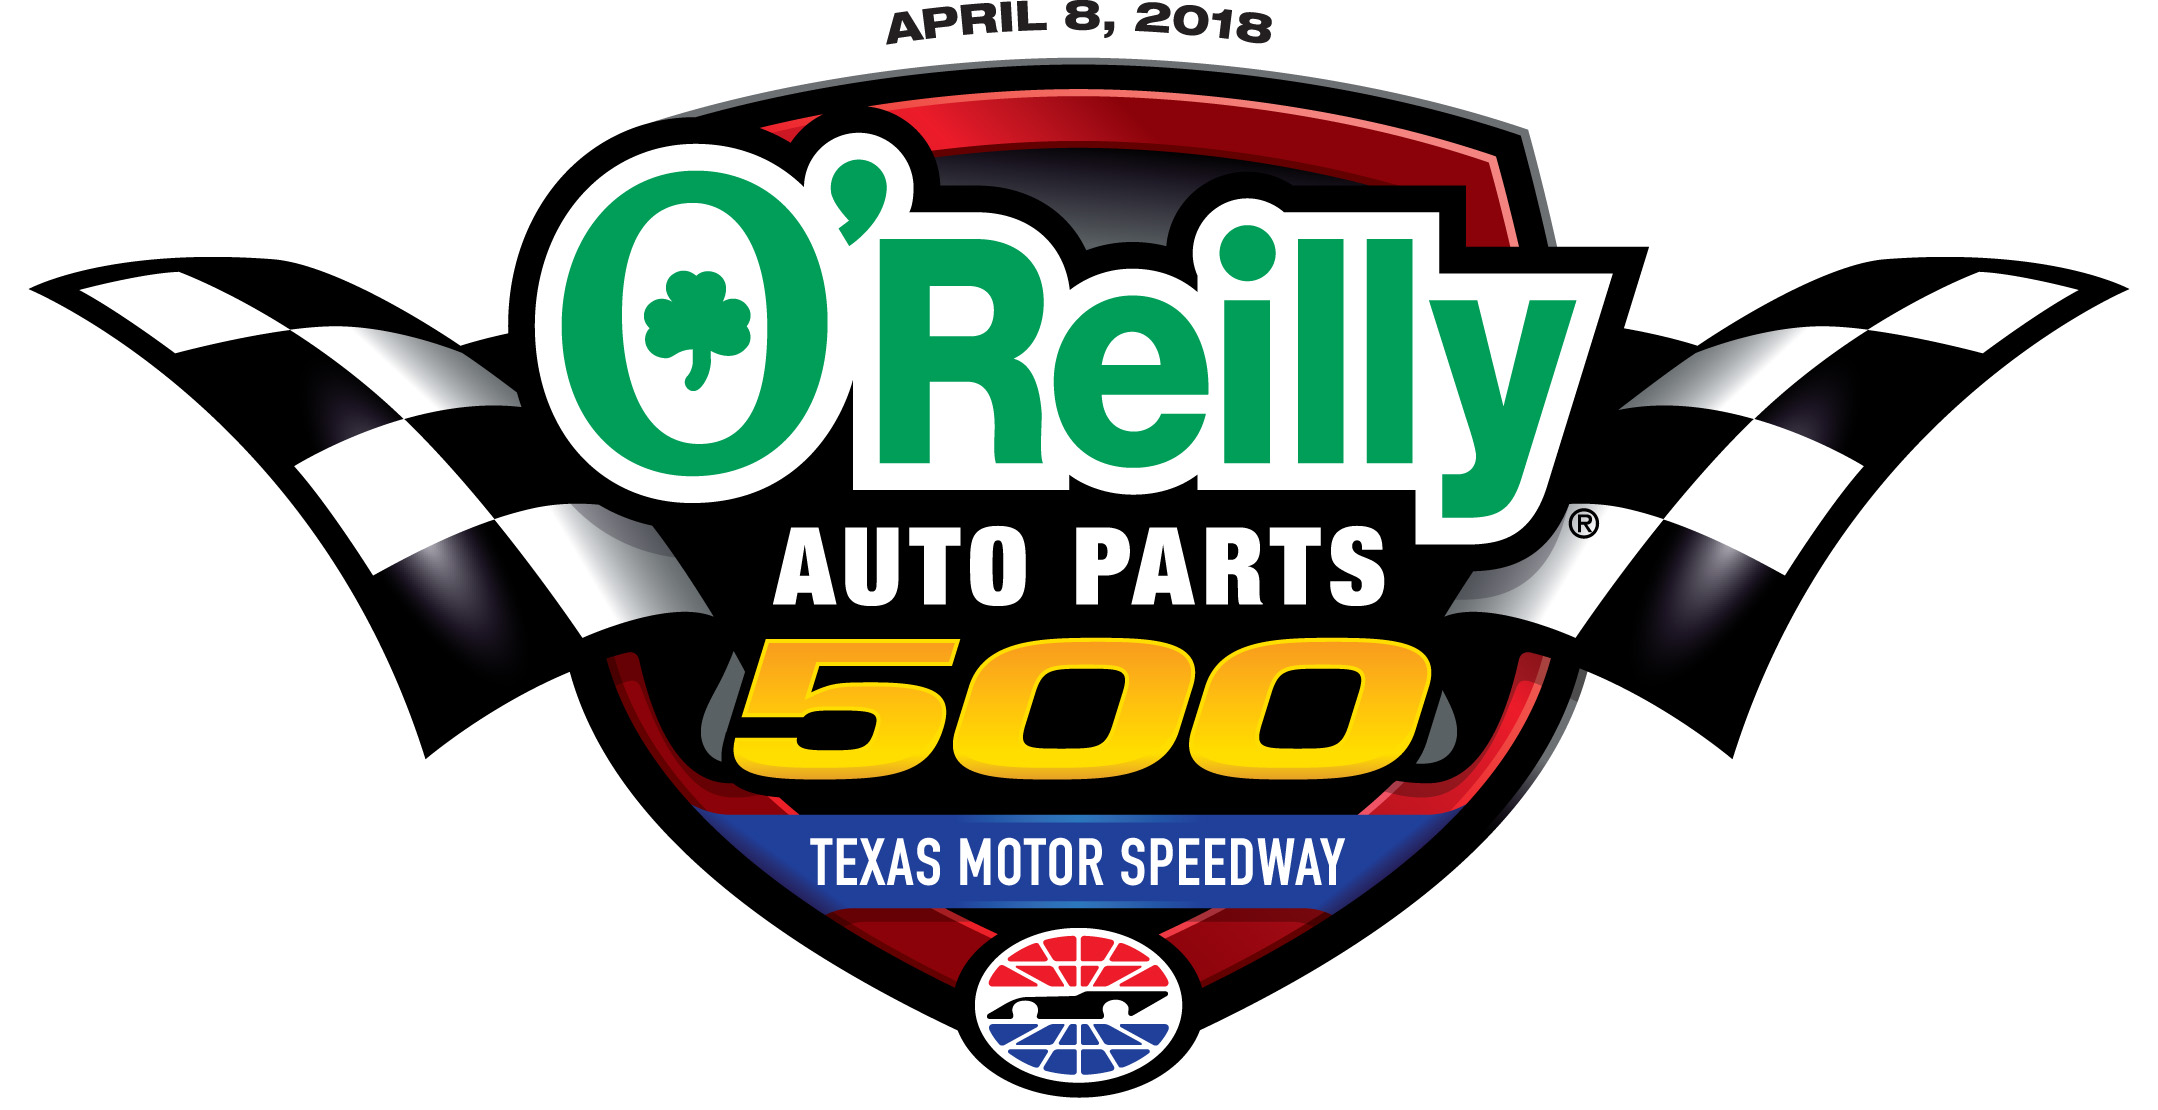 Mencs starting lineup 22nd annual o reilly auto parts 500 for Texas motor speedway drag racing